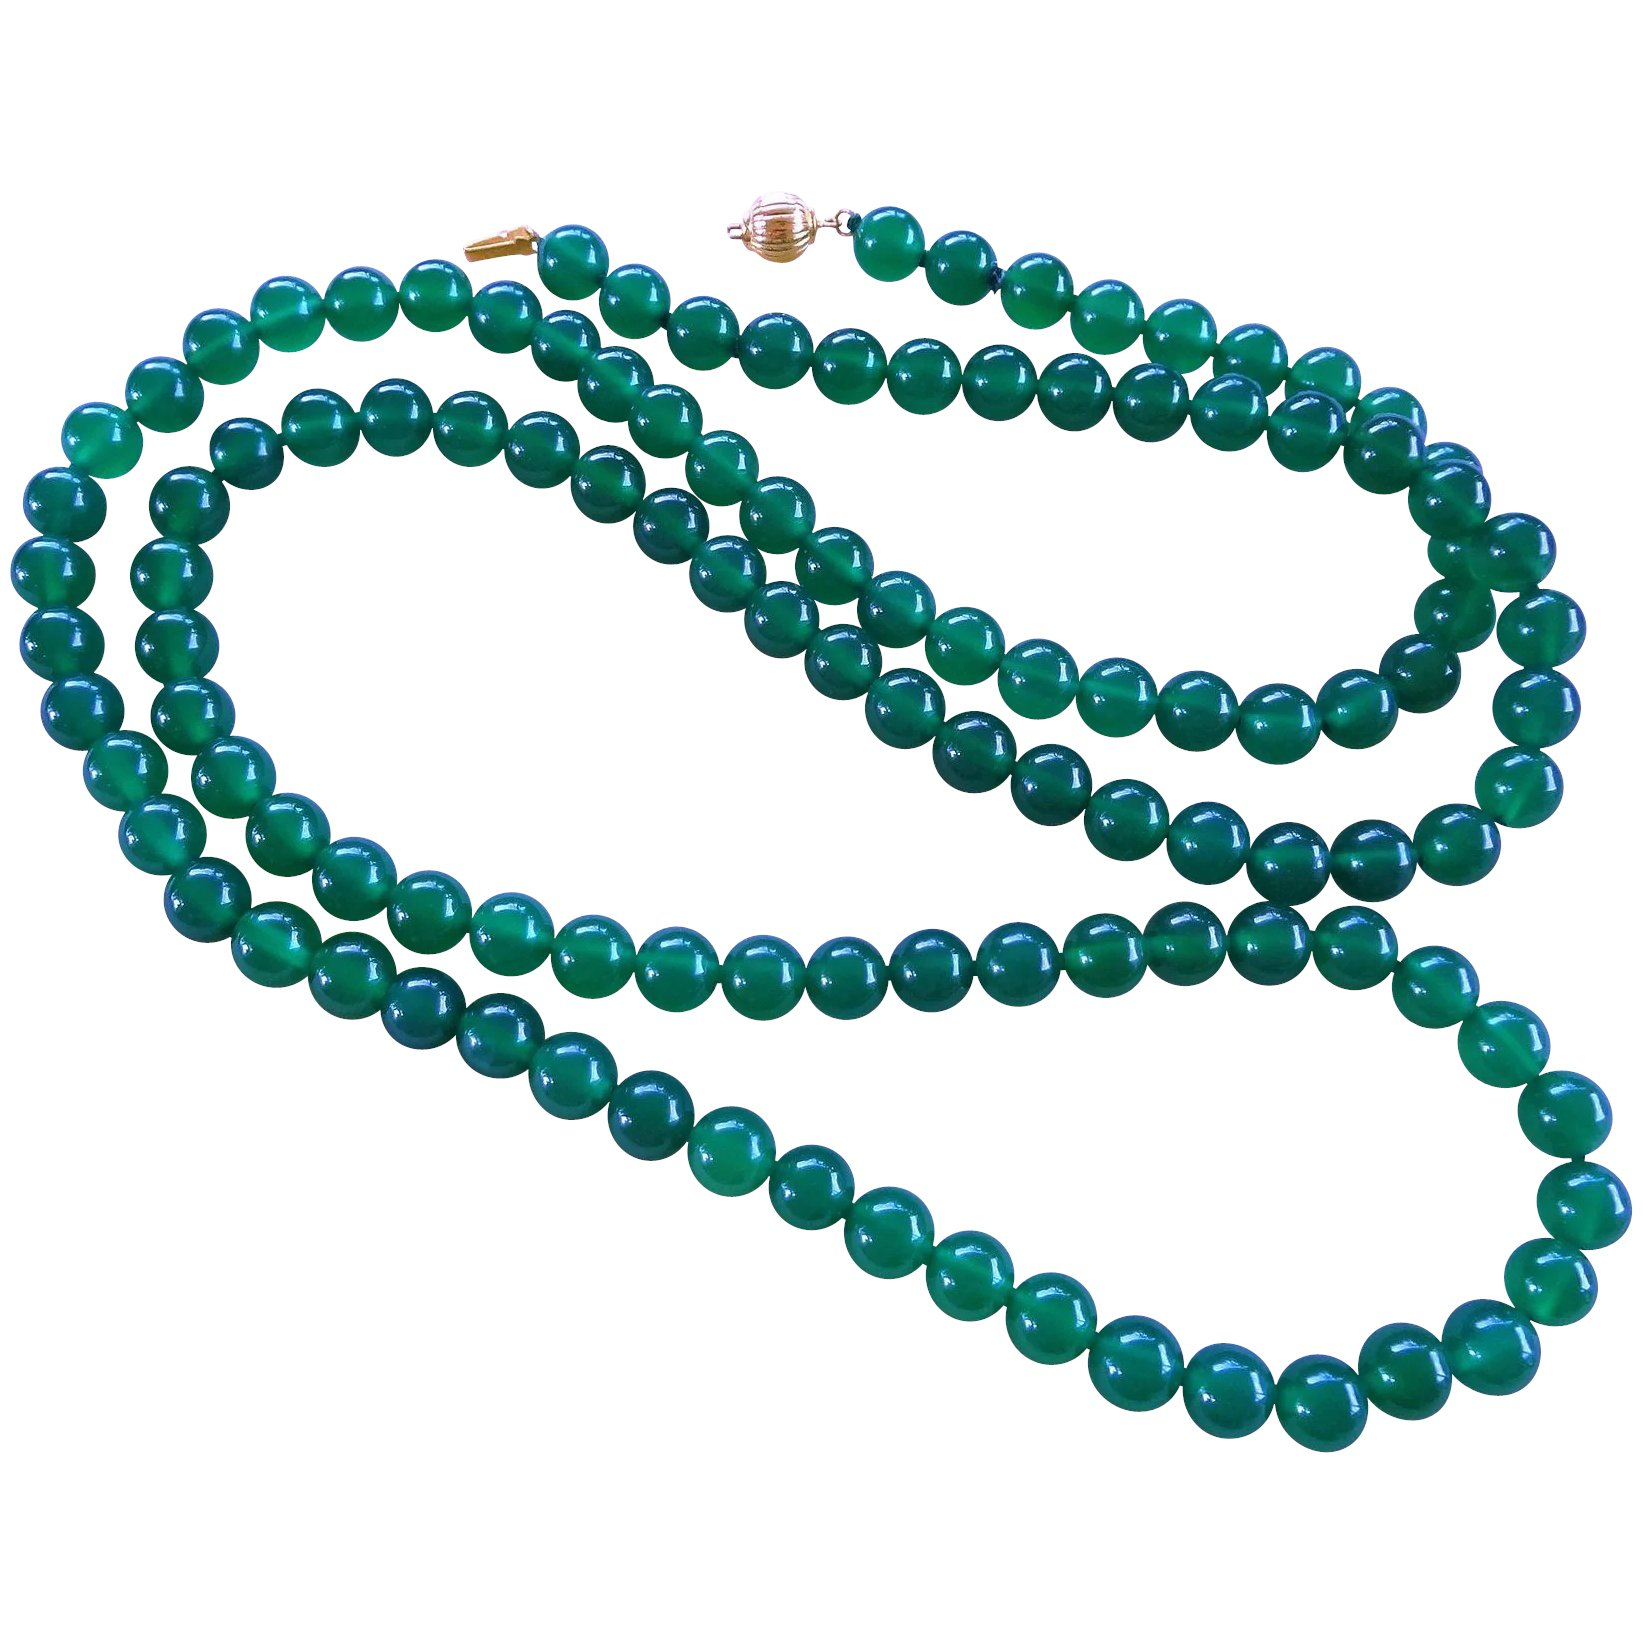 chrysoprase silver necklace the lining boutique products jewelry